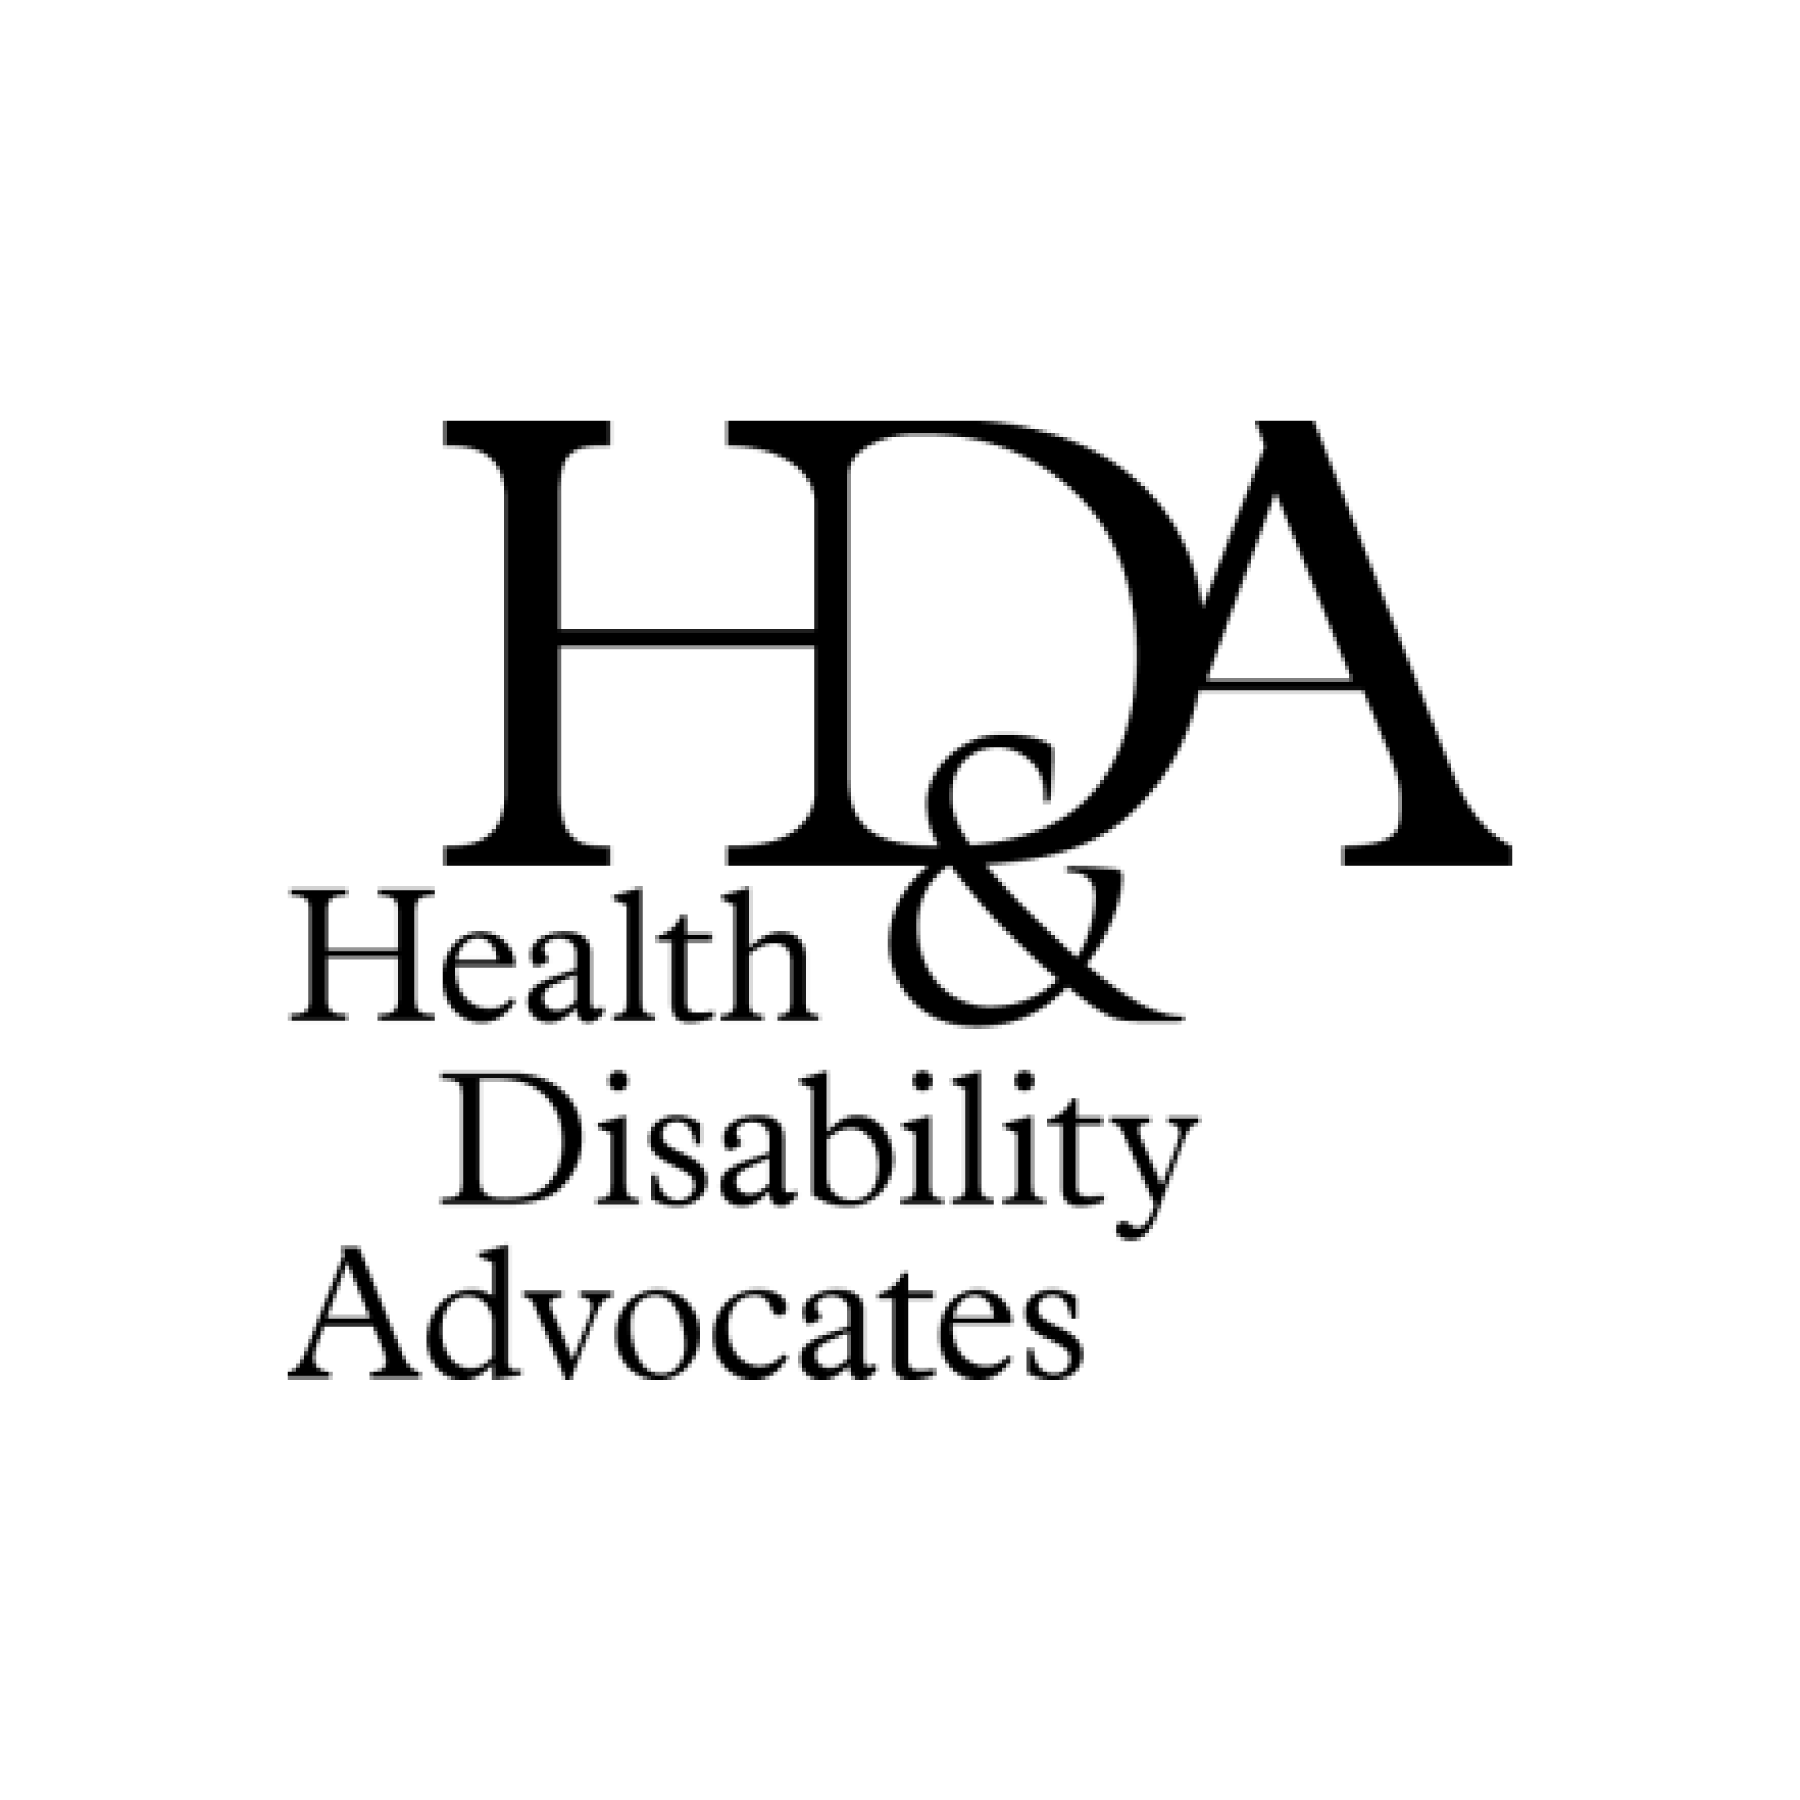 Health-&-Disibility-Advocates